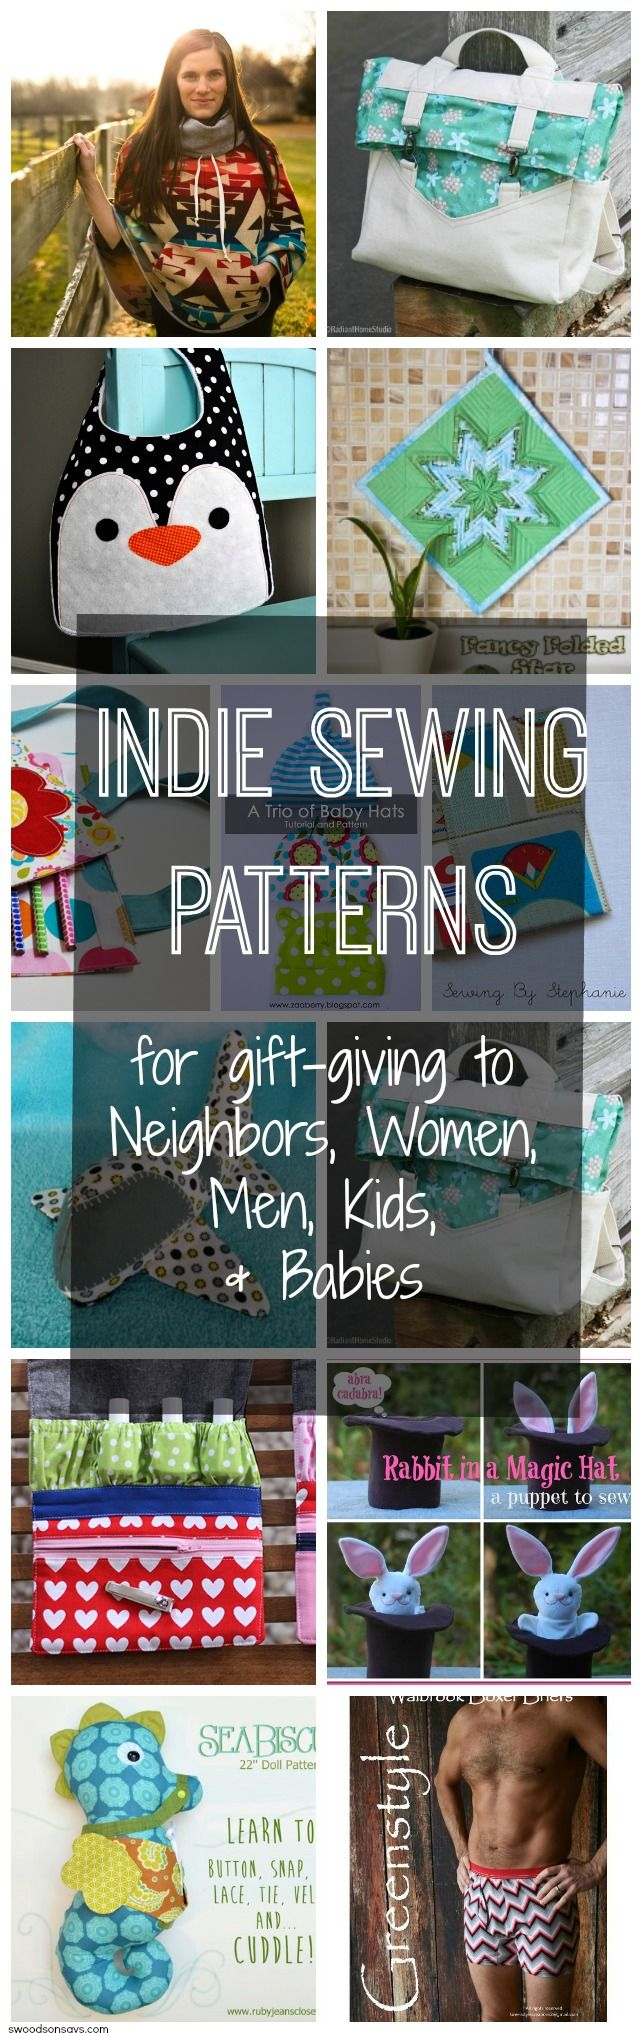 Indie Sewing Patterns for Gifts {for Neighbors, Ladies, Men, Kids, and Babies!}. 15 fresh ideas to sew & give this season - including a few freebies!